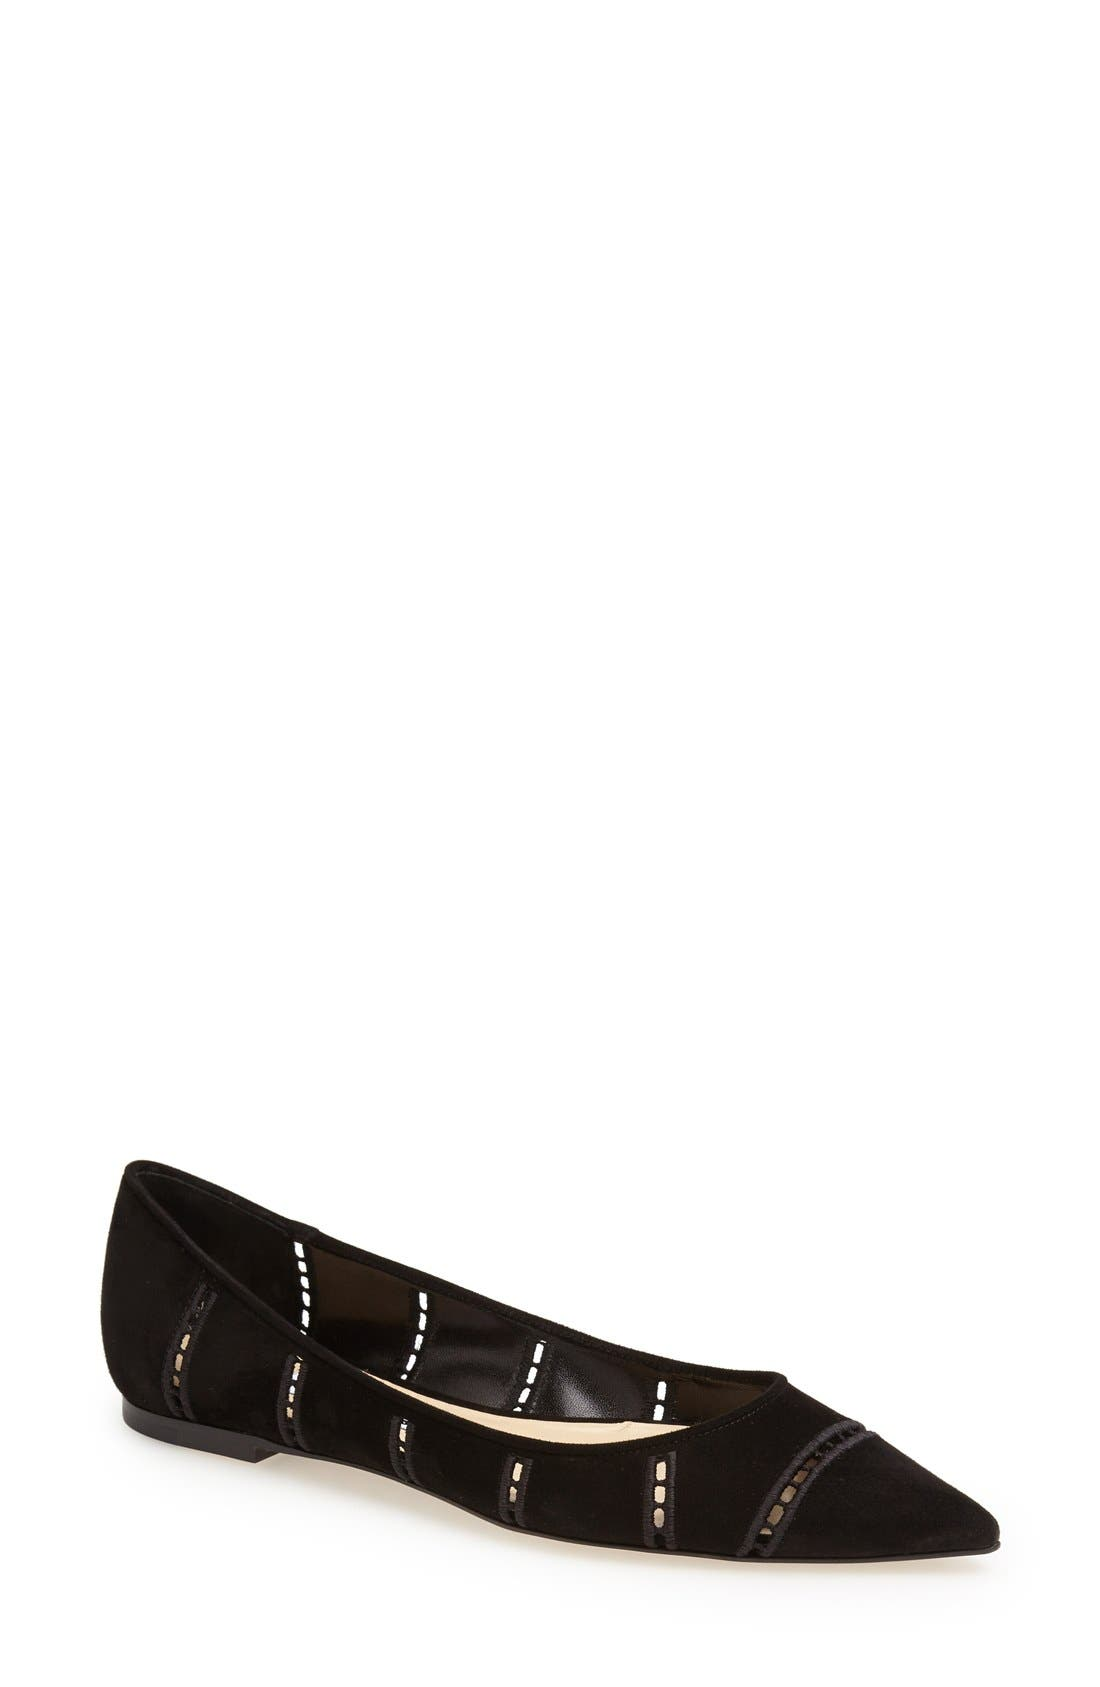 Main Image - Jimmy Choo 'Alina' Pointy Toe Perforated Broderie Anglaise Suede Flat (Women)